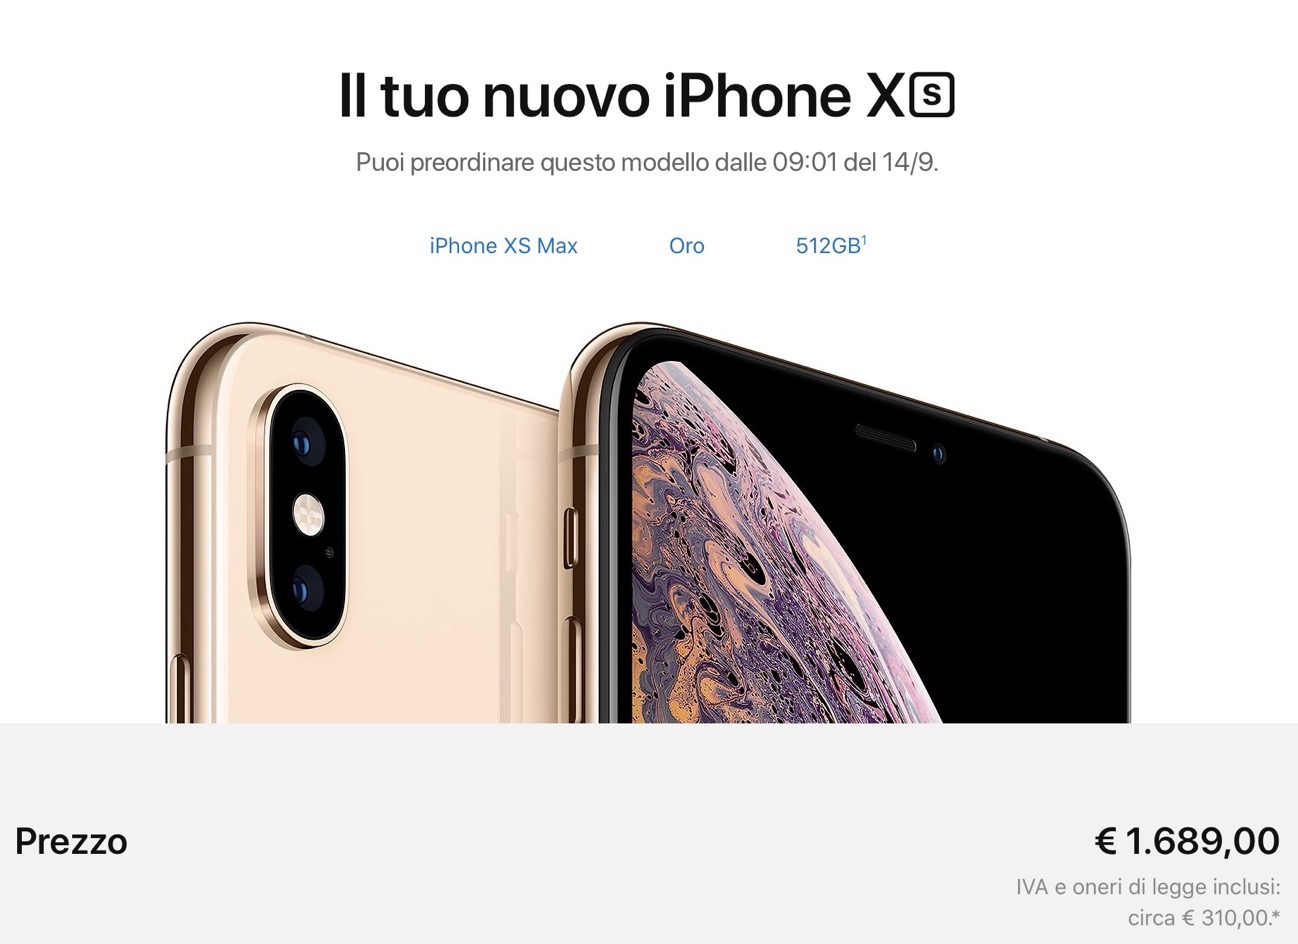 IPhone Xs Max prezzo